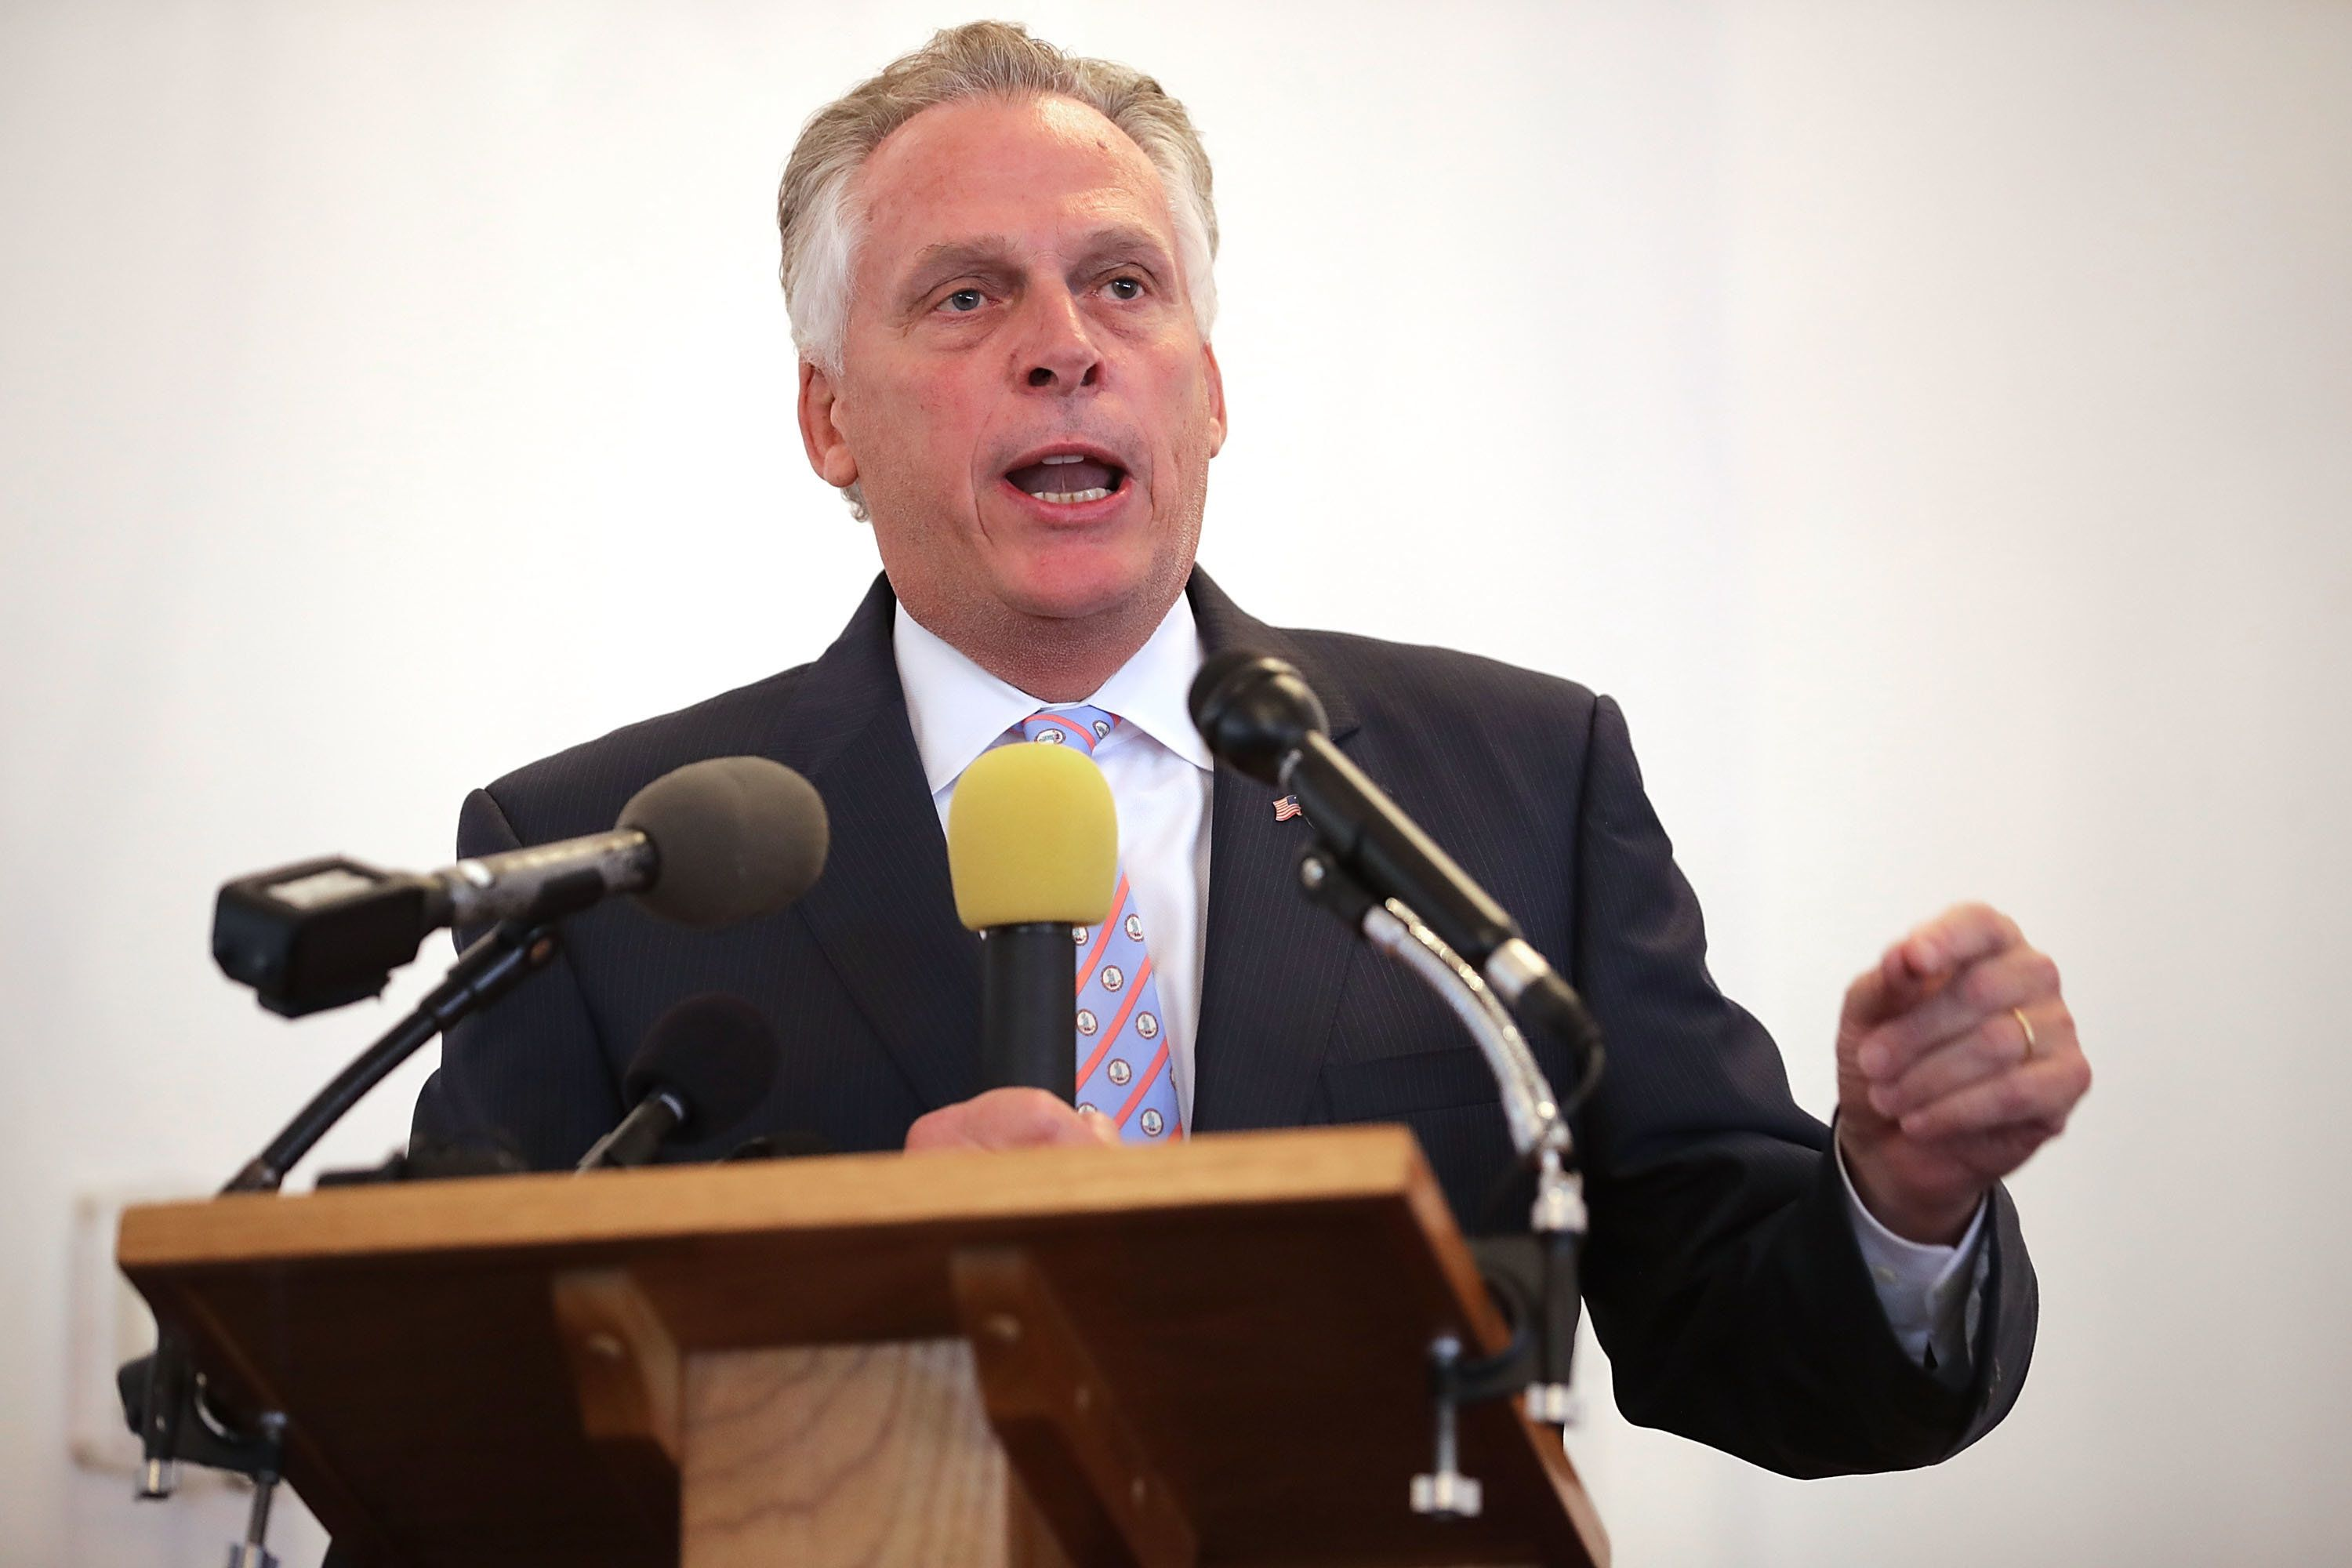 Former Virginia Gov. Terry McAuliffe Announces He Won't Run For President